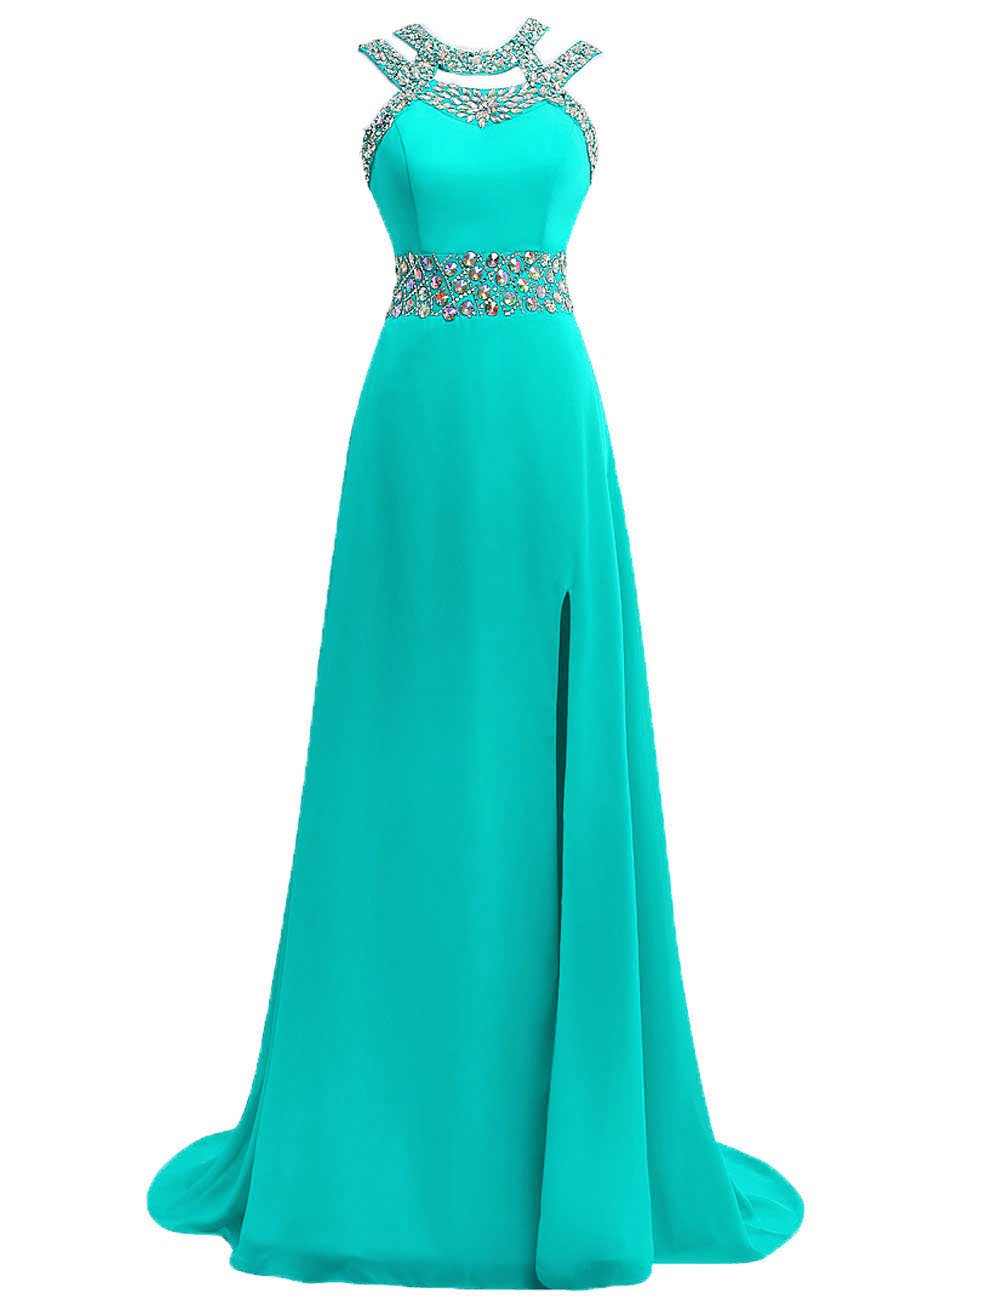 JAEDEN Women's Perfect Beaded Chiffon Bridesmaid Prom Dress Formal Evening Dress Turquoise US8